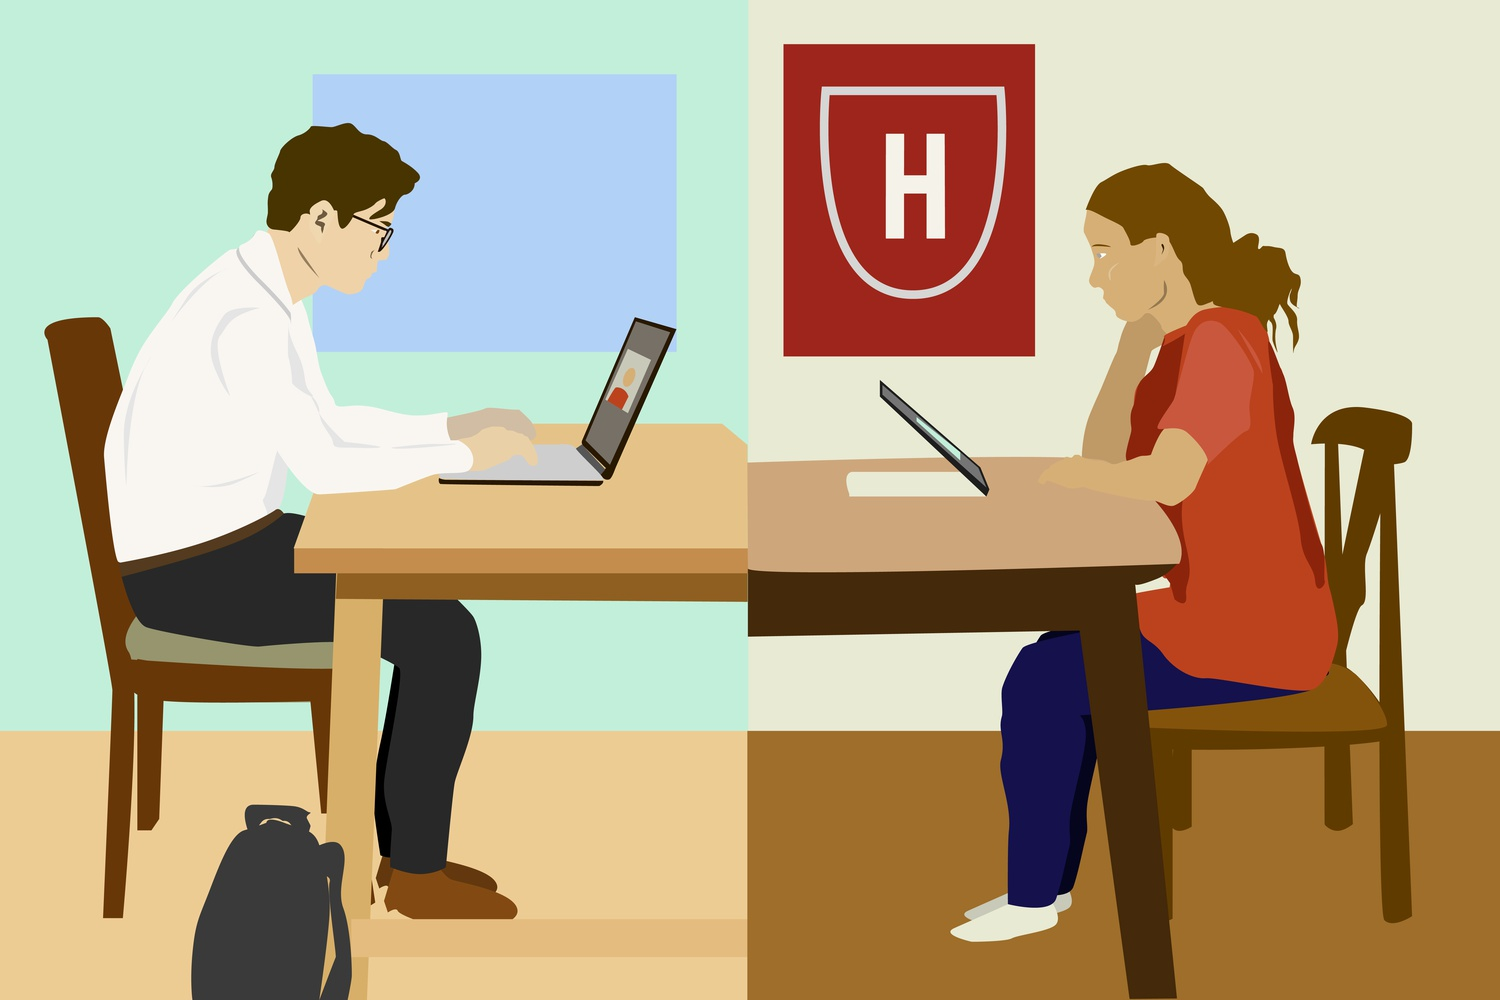 Harvard College alumni are conducting admissions interviews remotely during the coronavirus pandemic.